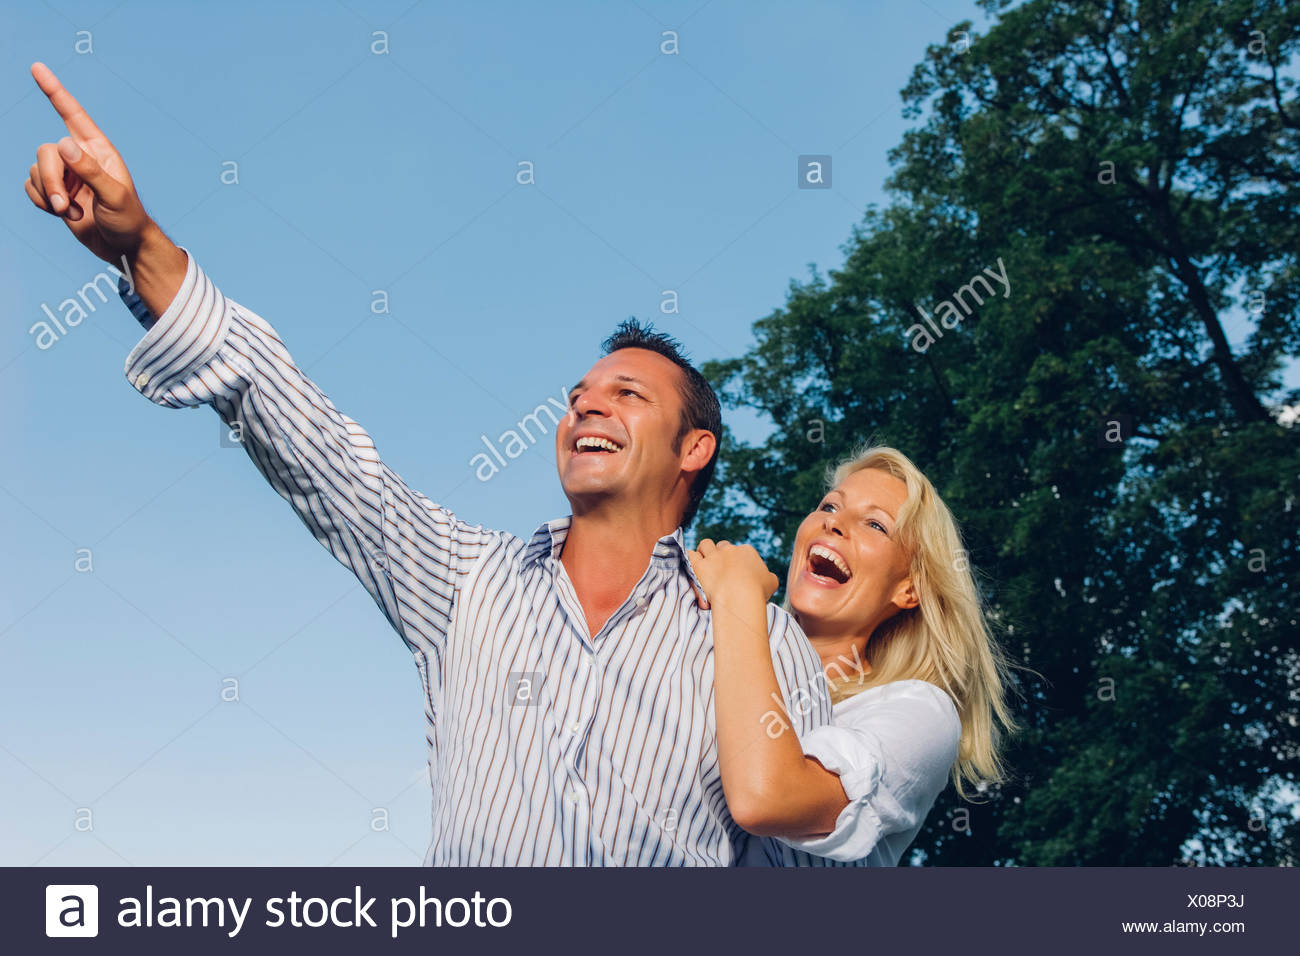 Laughing couple watching something in nature - Stock Image